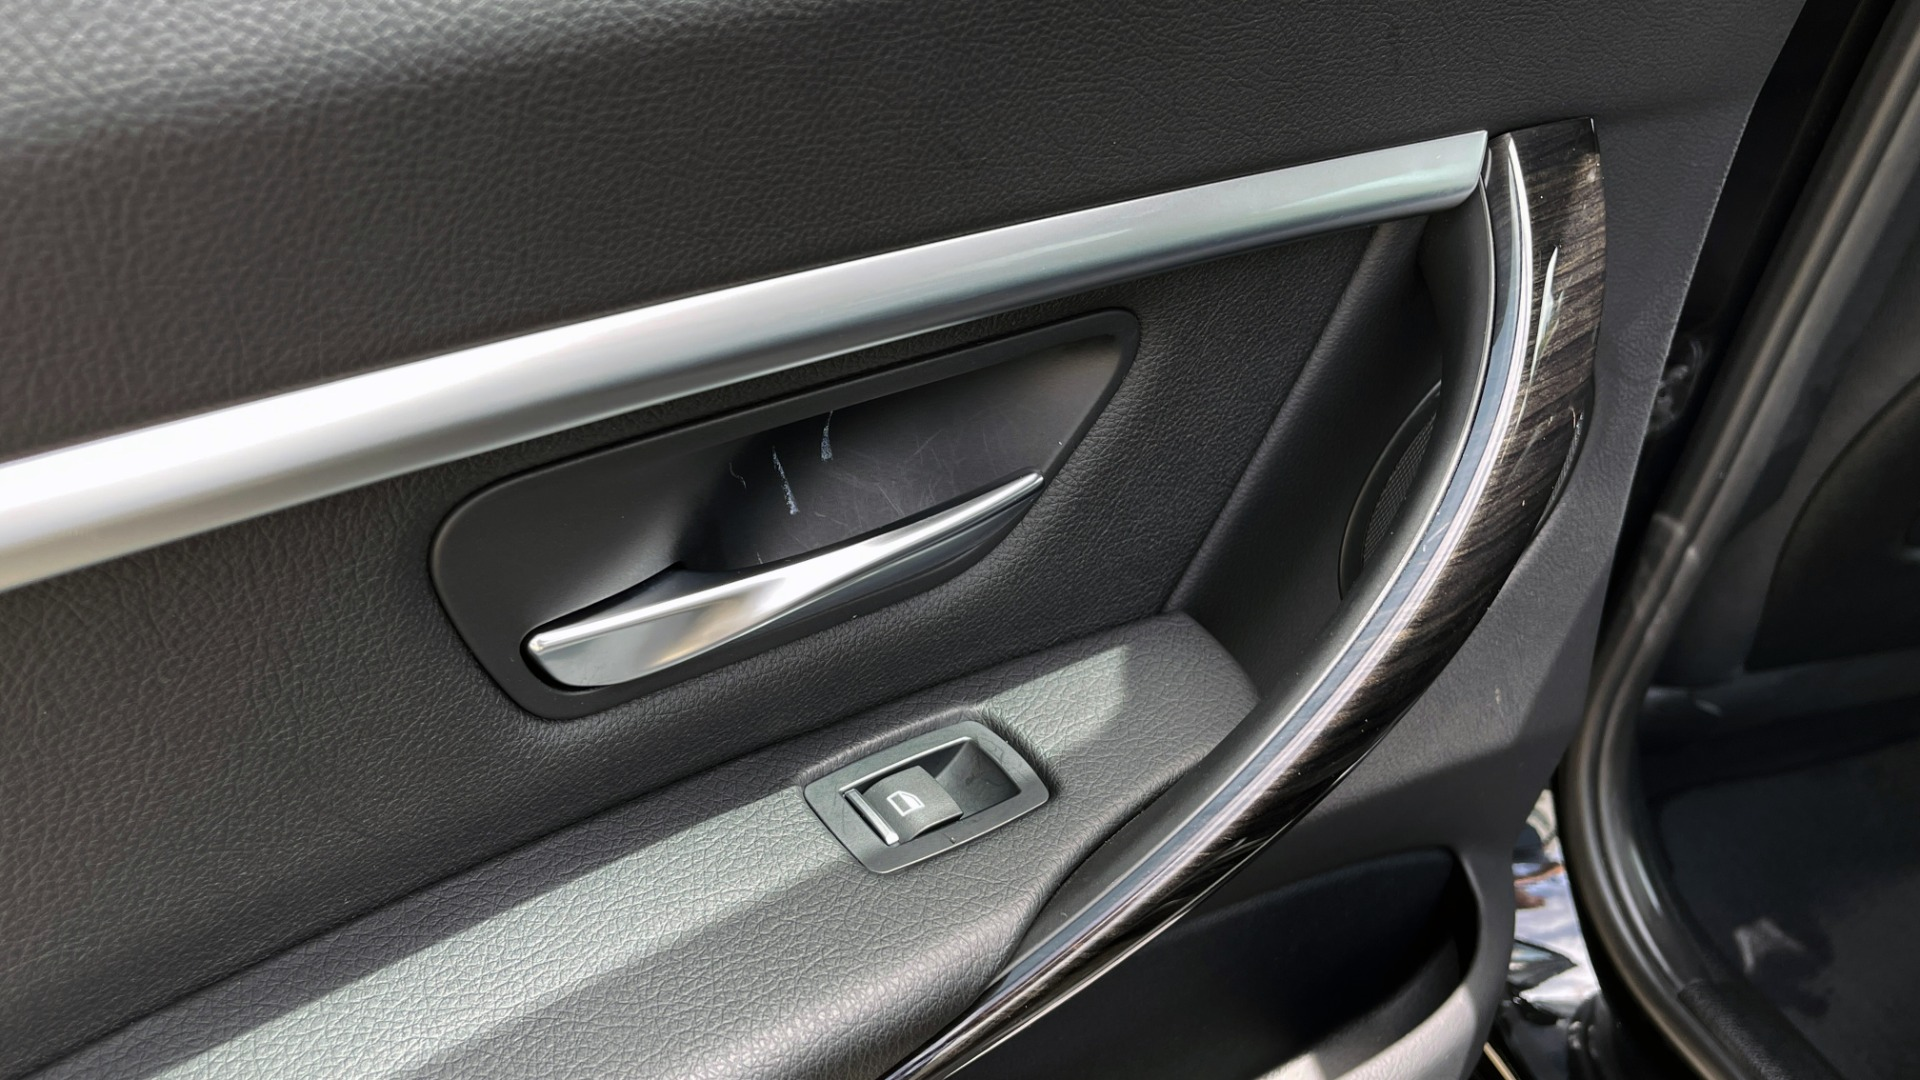 Used 2018 BMW 3 SERIES 330IXDRIVE / NAV / CONV PKG / ABSD / SUNROOF / REARVIEW for sale $29,599 at Formula Imports in Charlotte NC 28227 49